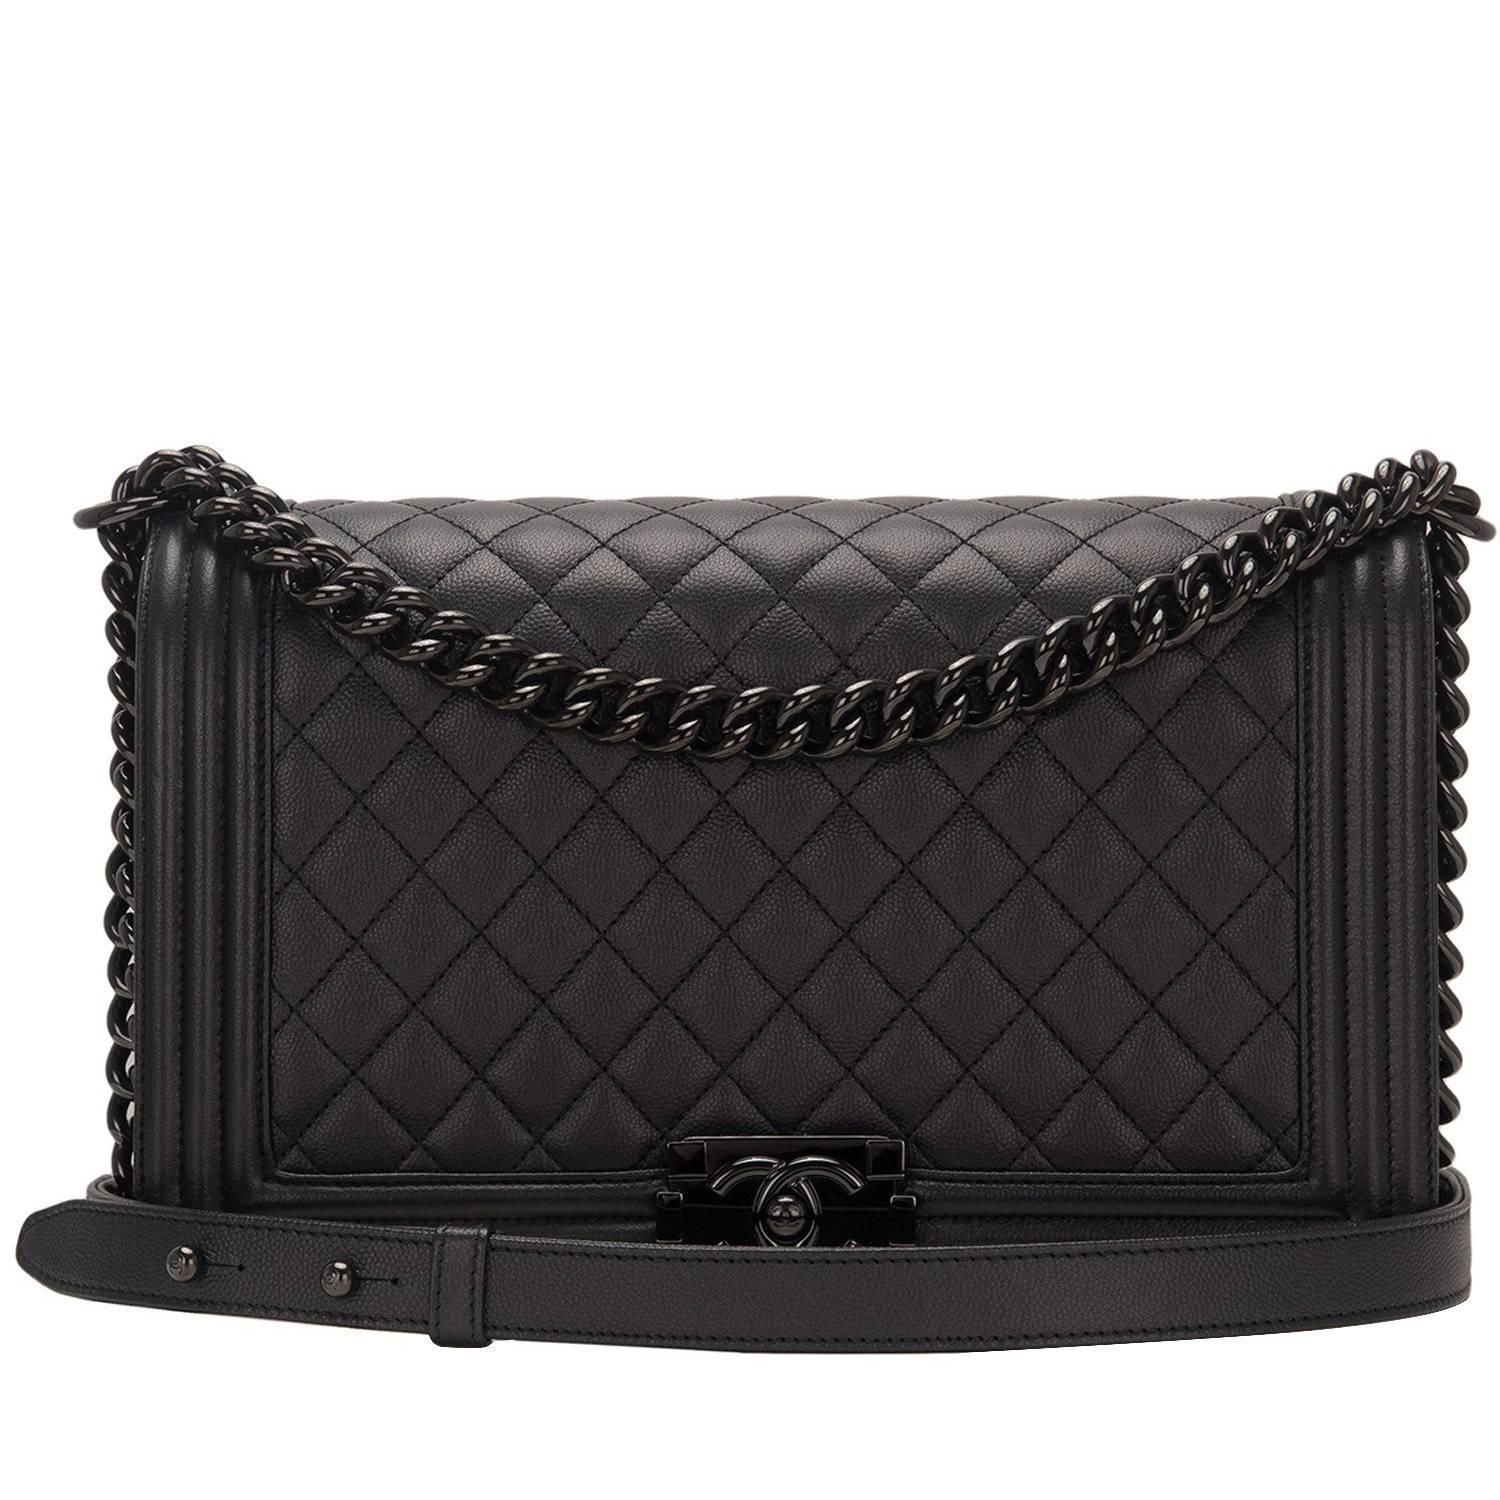 1e8970bd824 Chanel SO Black Quilted Grained Lambskin New Medium Boy Bag   Chanel ...